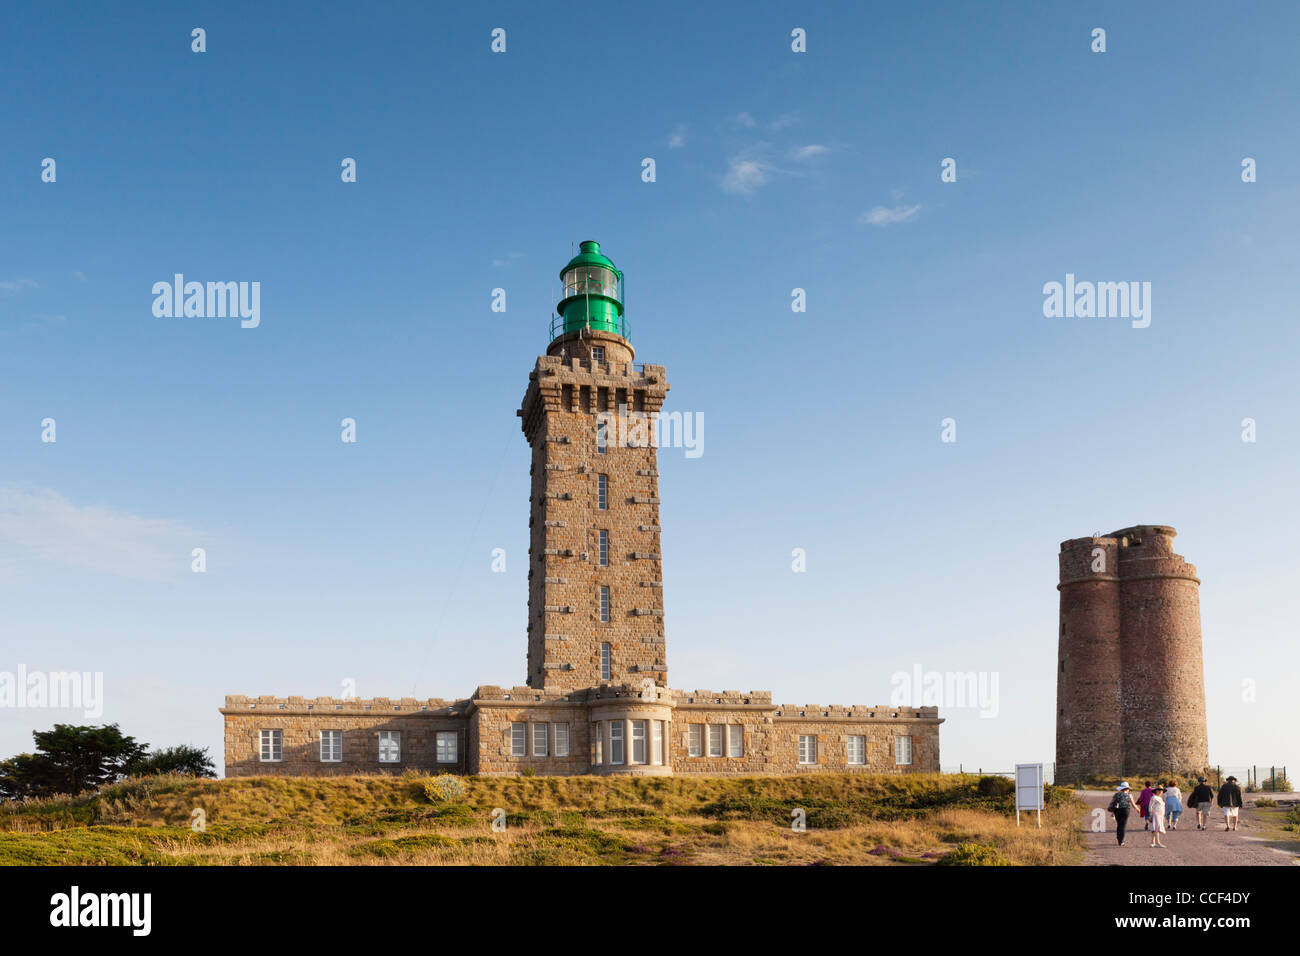 One of Brittany's many famous lighthouses, this is Cap Frehel lighthouse and semaphore in beautiful evening light. Stock Photo